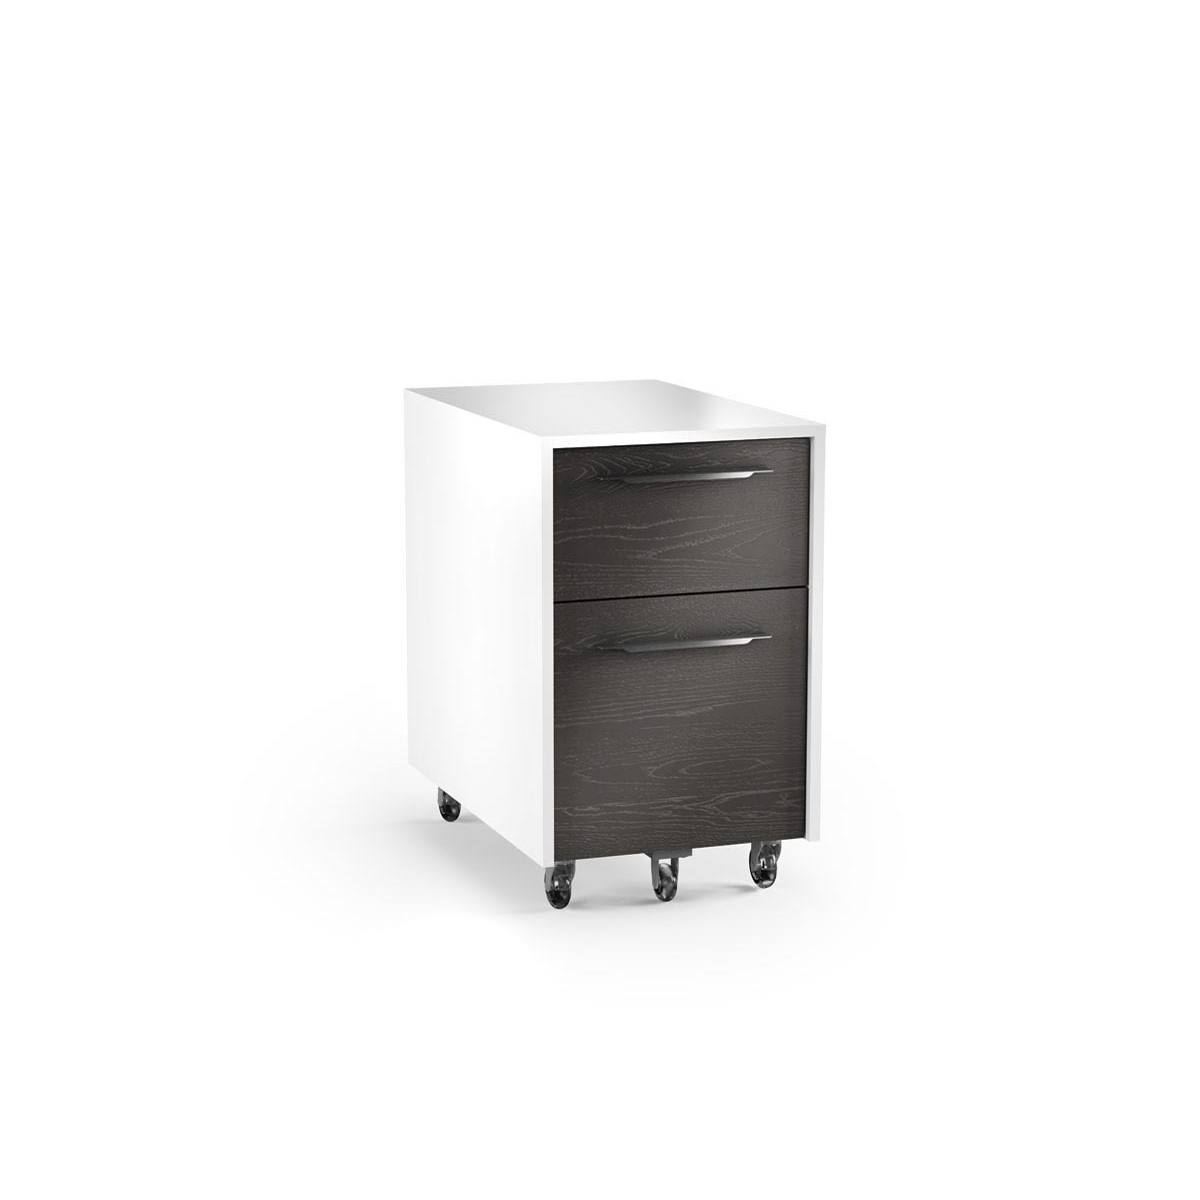 staples minimalist file color papers filing white blue drawer to in with metal vertical modern cabinet and organize how